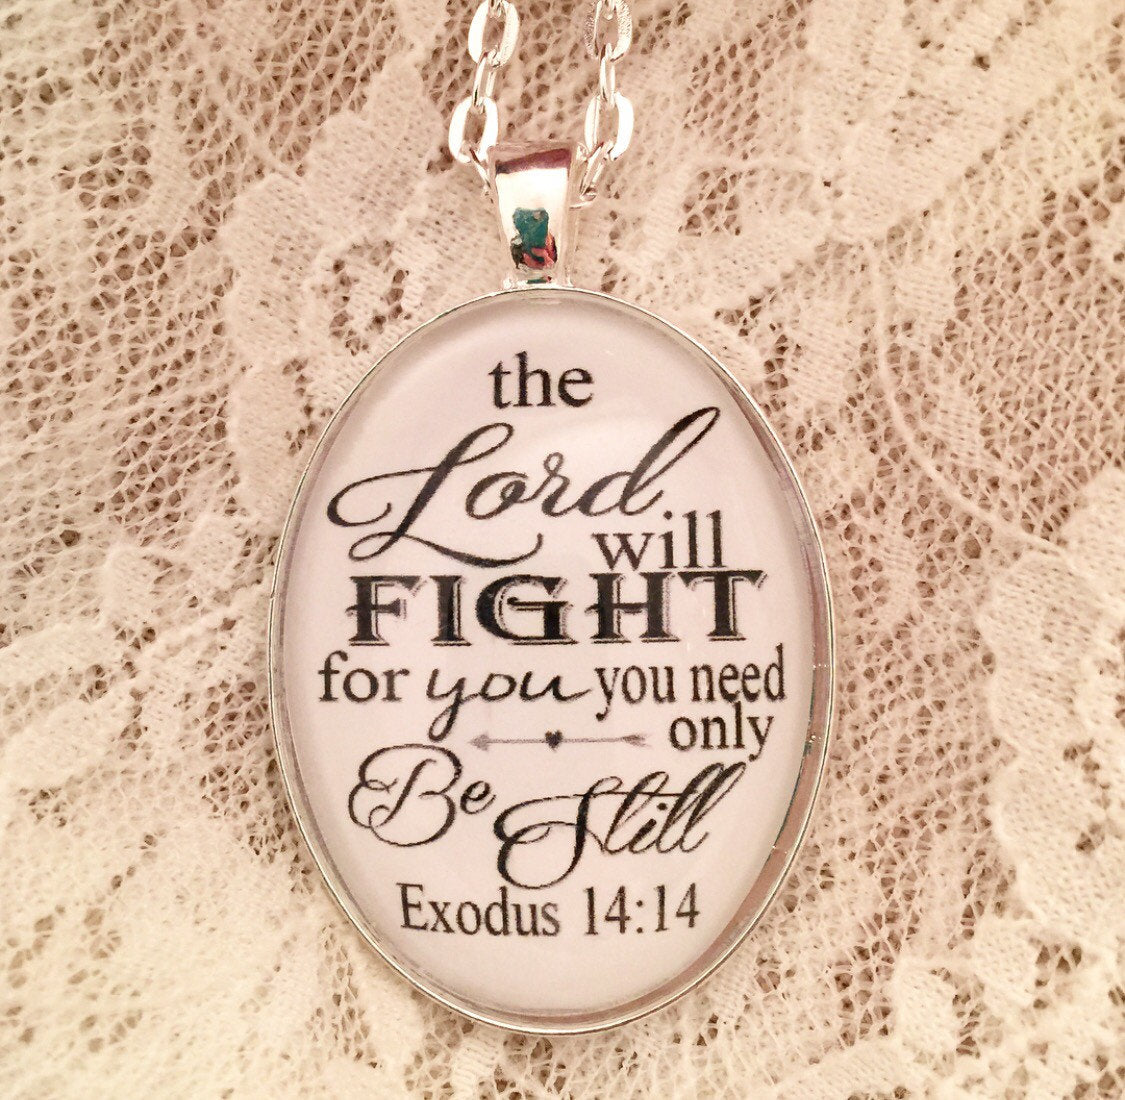 The Lord will fight for you you need only be still. Exodus 14:14 Nceklace - Redeemed Jewelry